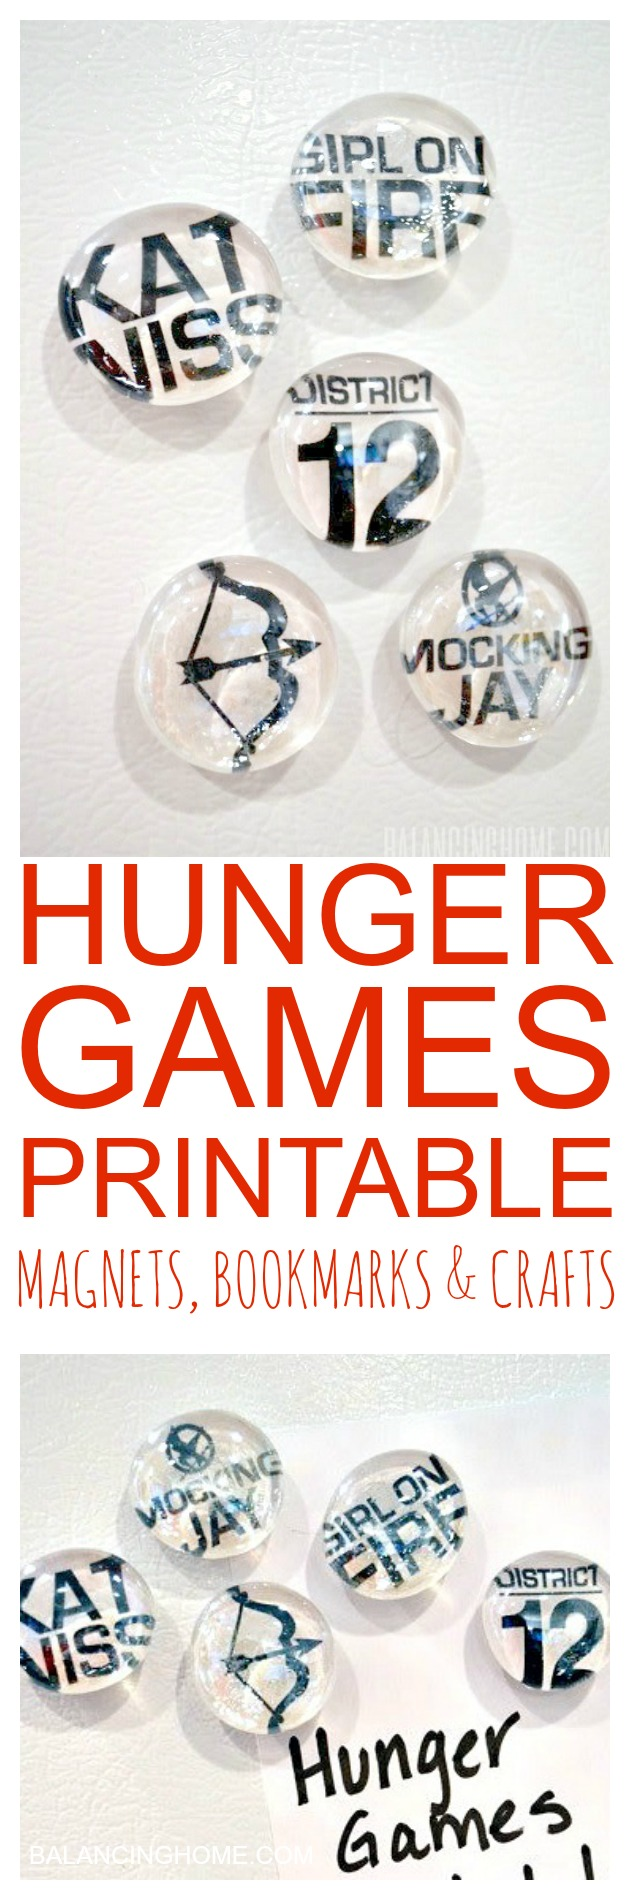 A Hunger Games printable-- perfect for DIY magnets, bookmarks and other crafts.